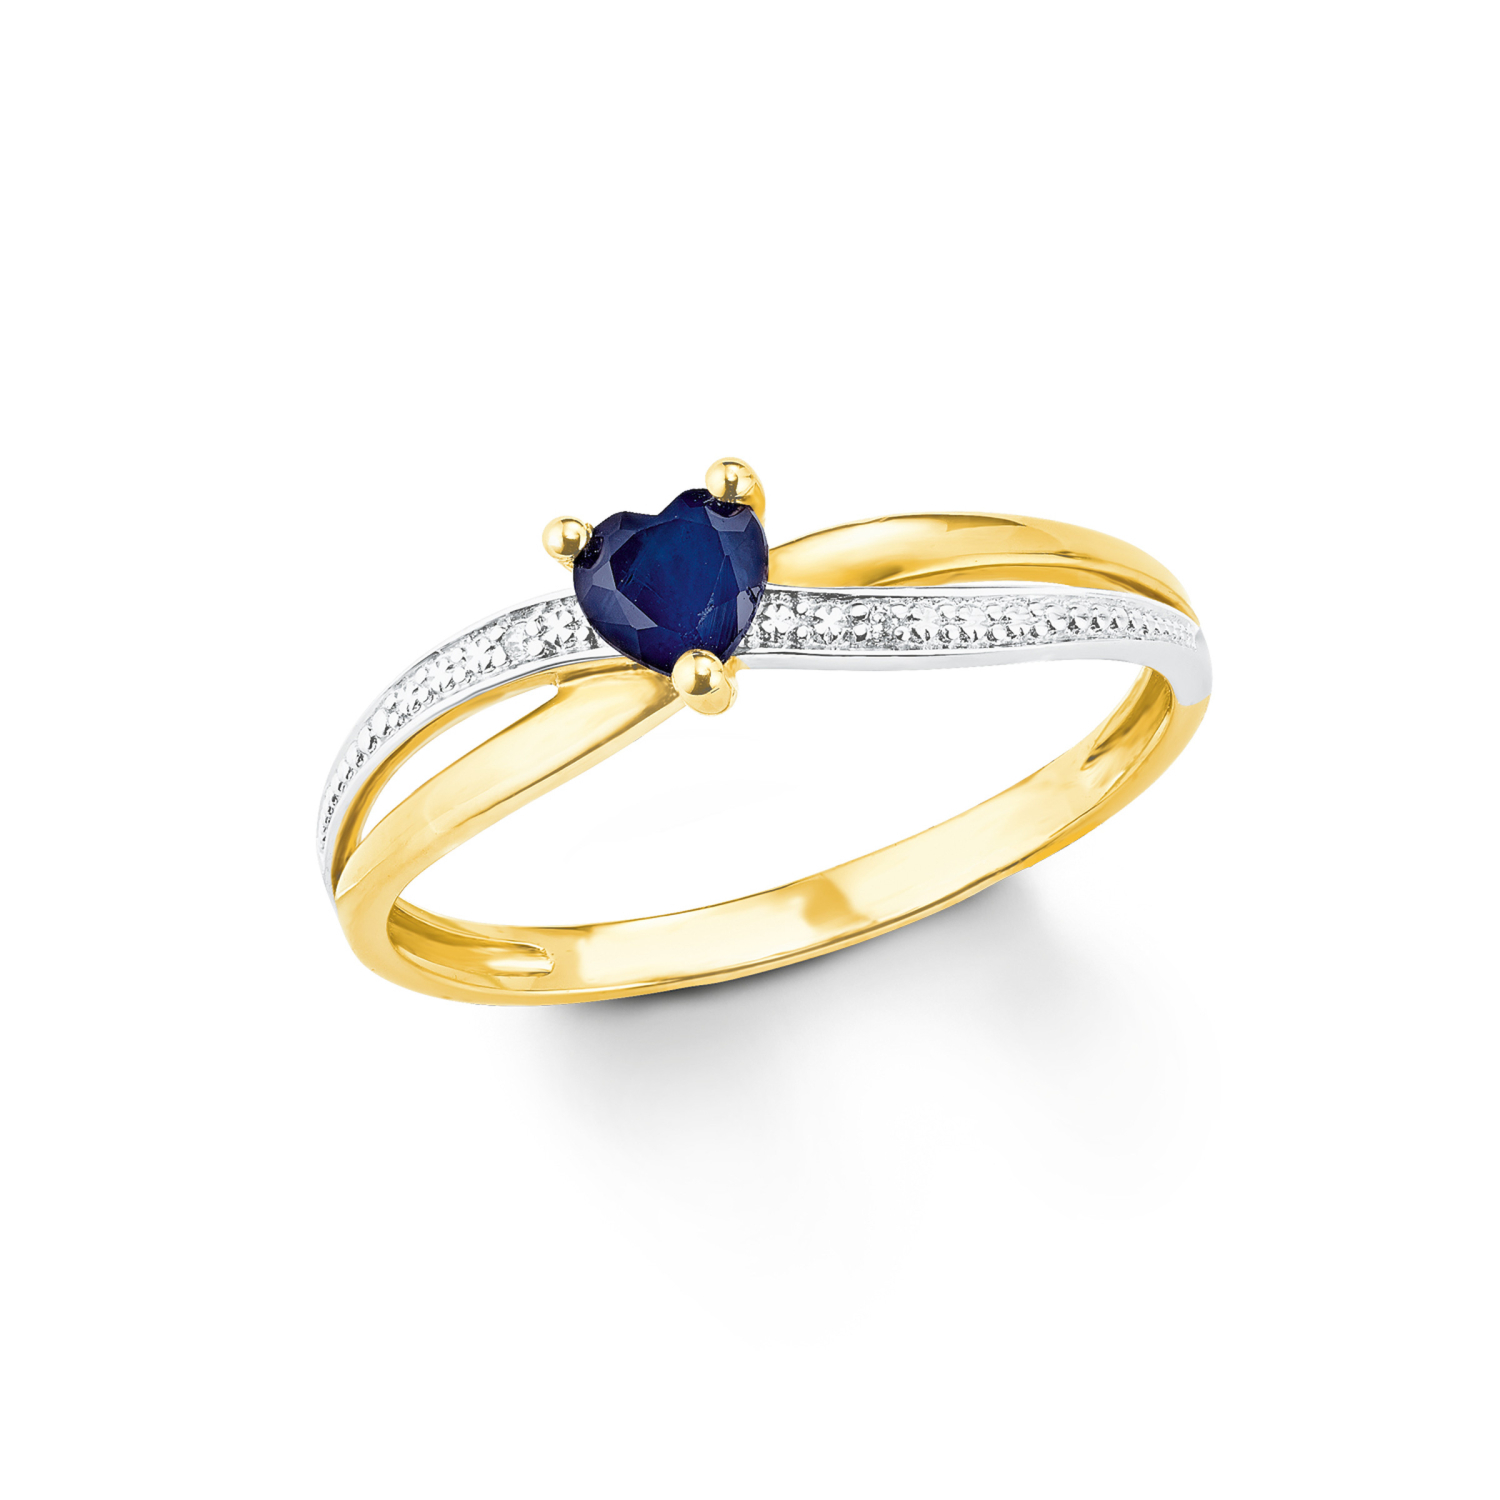 Ring Gold 375/9 ct Zirkonia synth. Herz